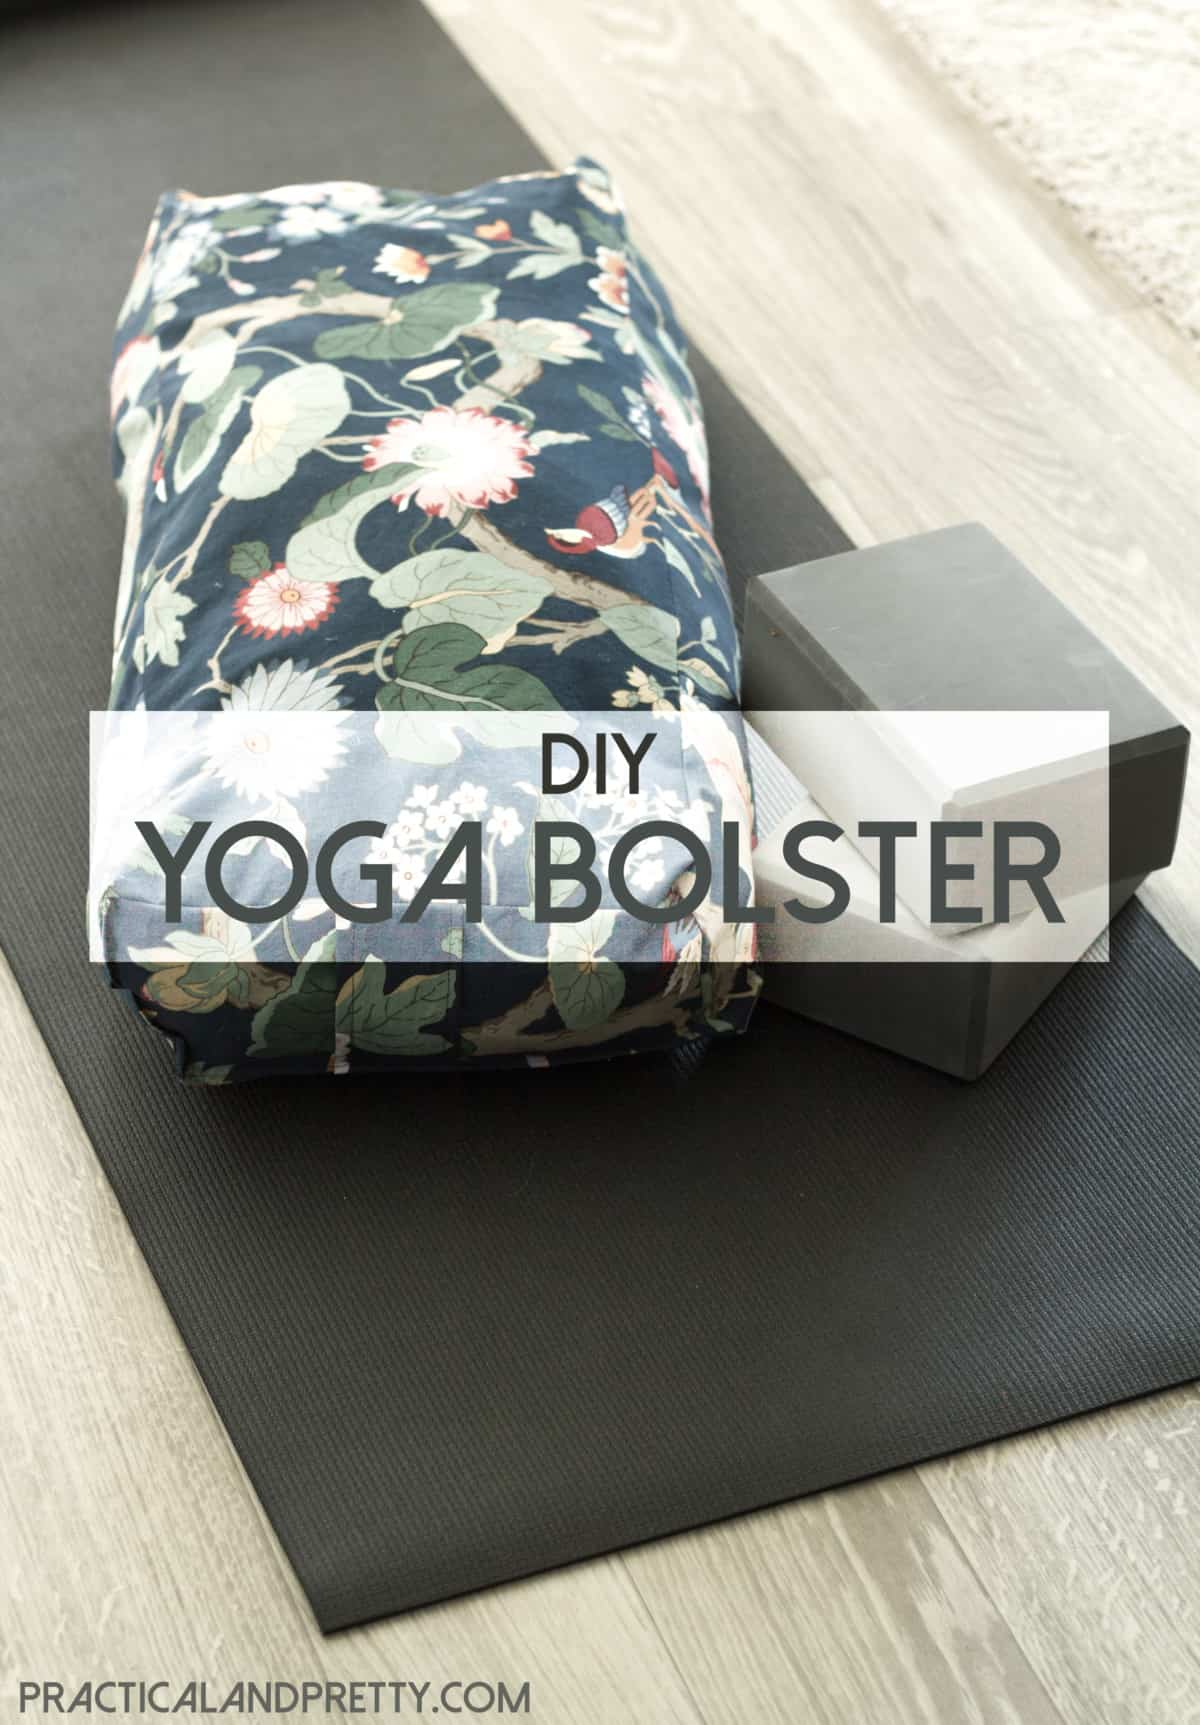 projekty cushion pillow bolster pin custom yoga how do to a tutorial sew cover